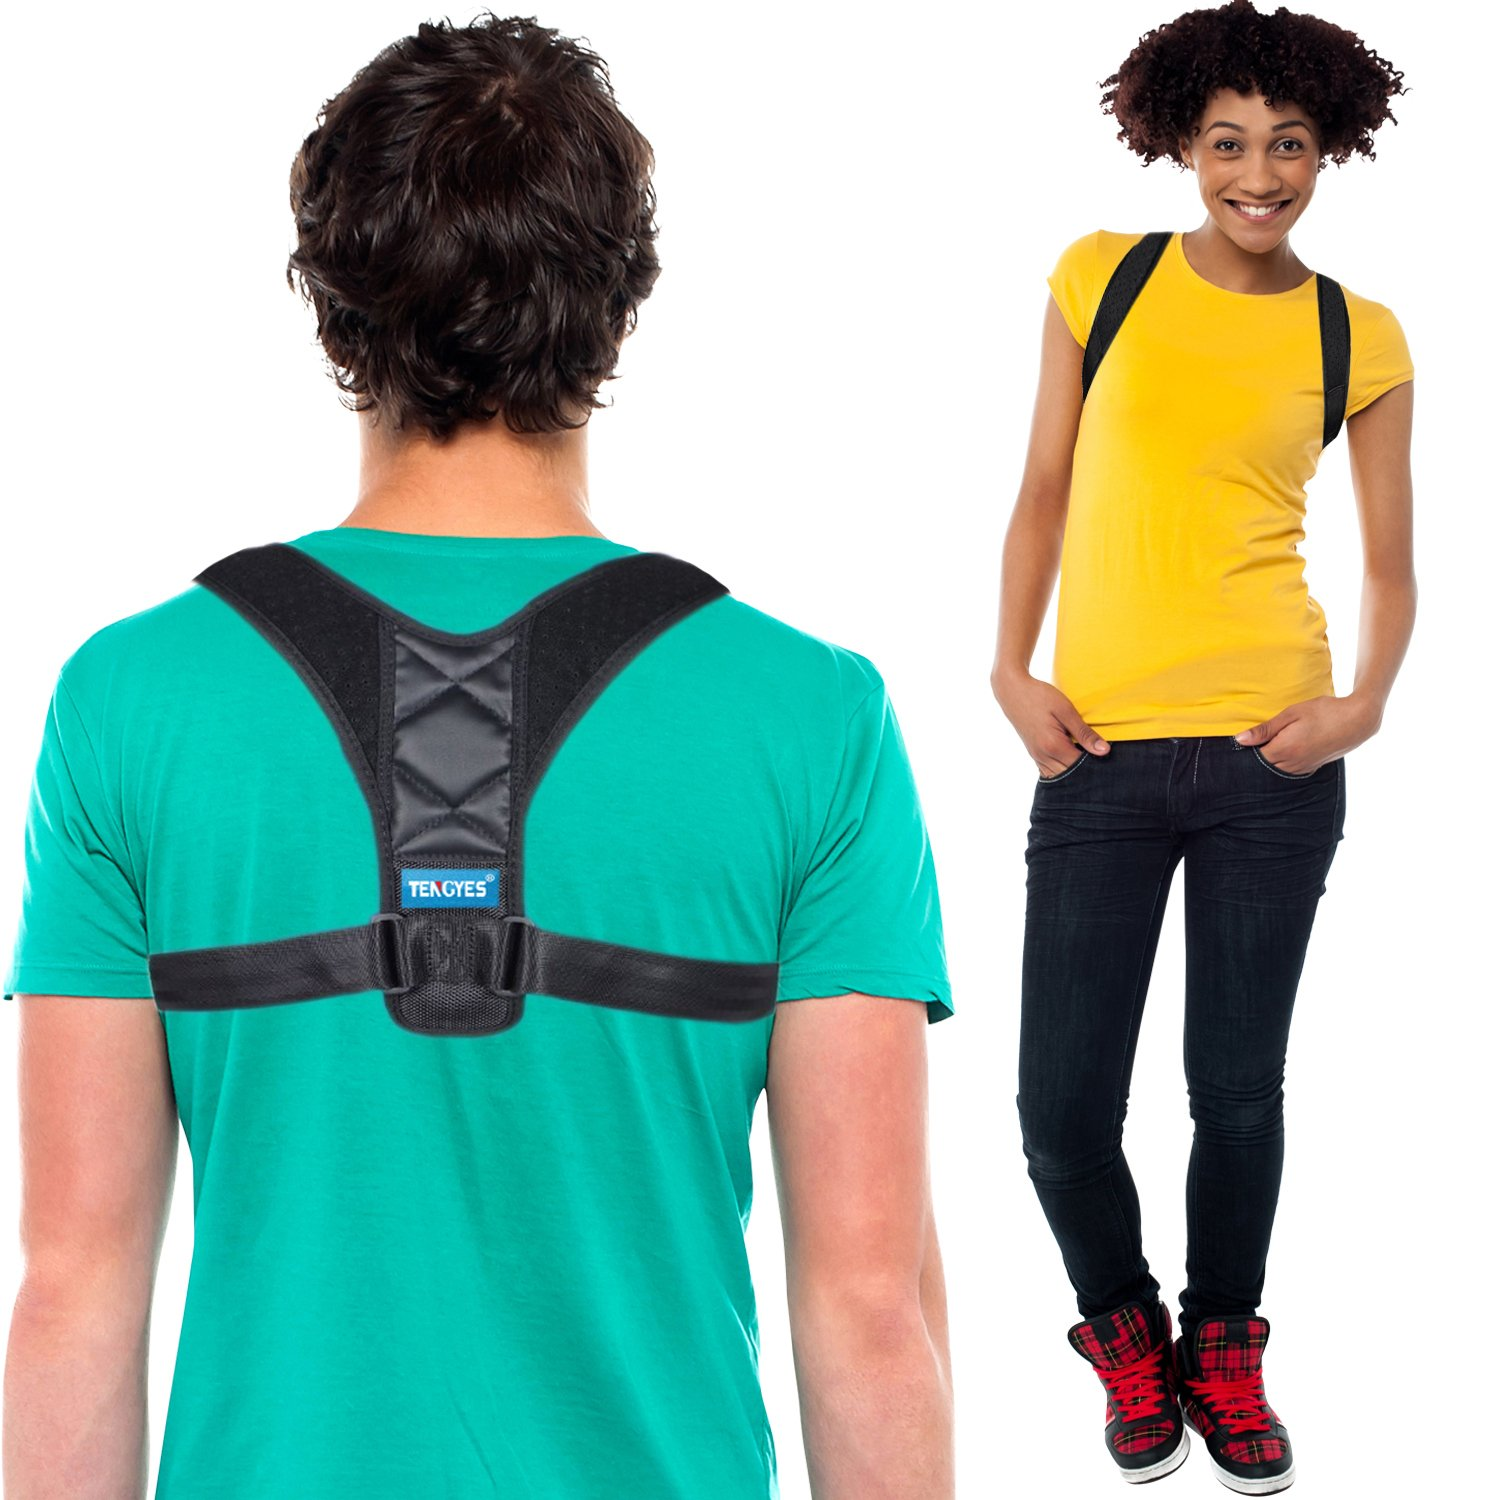 Back Brace Posture Corrector for Men Women - Effective and Comfortable Support Brace for Neck Upper Back Pain Relief Slouching & Hunching - Adjustable Clavicle Straightener FDA Approved